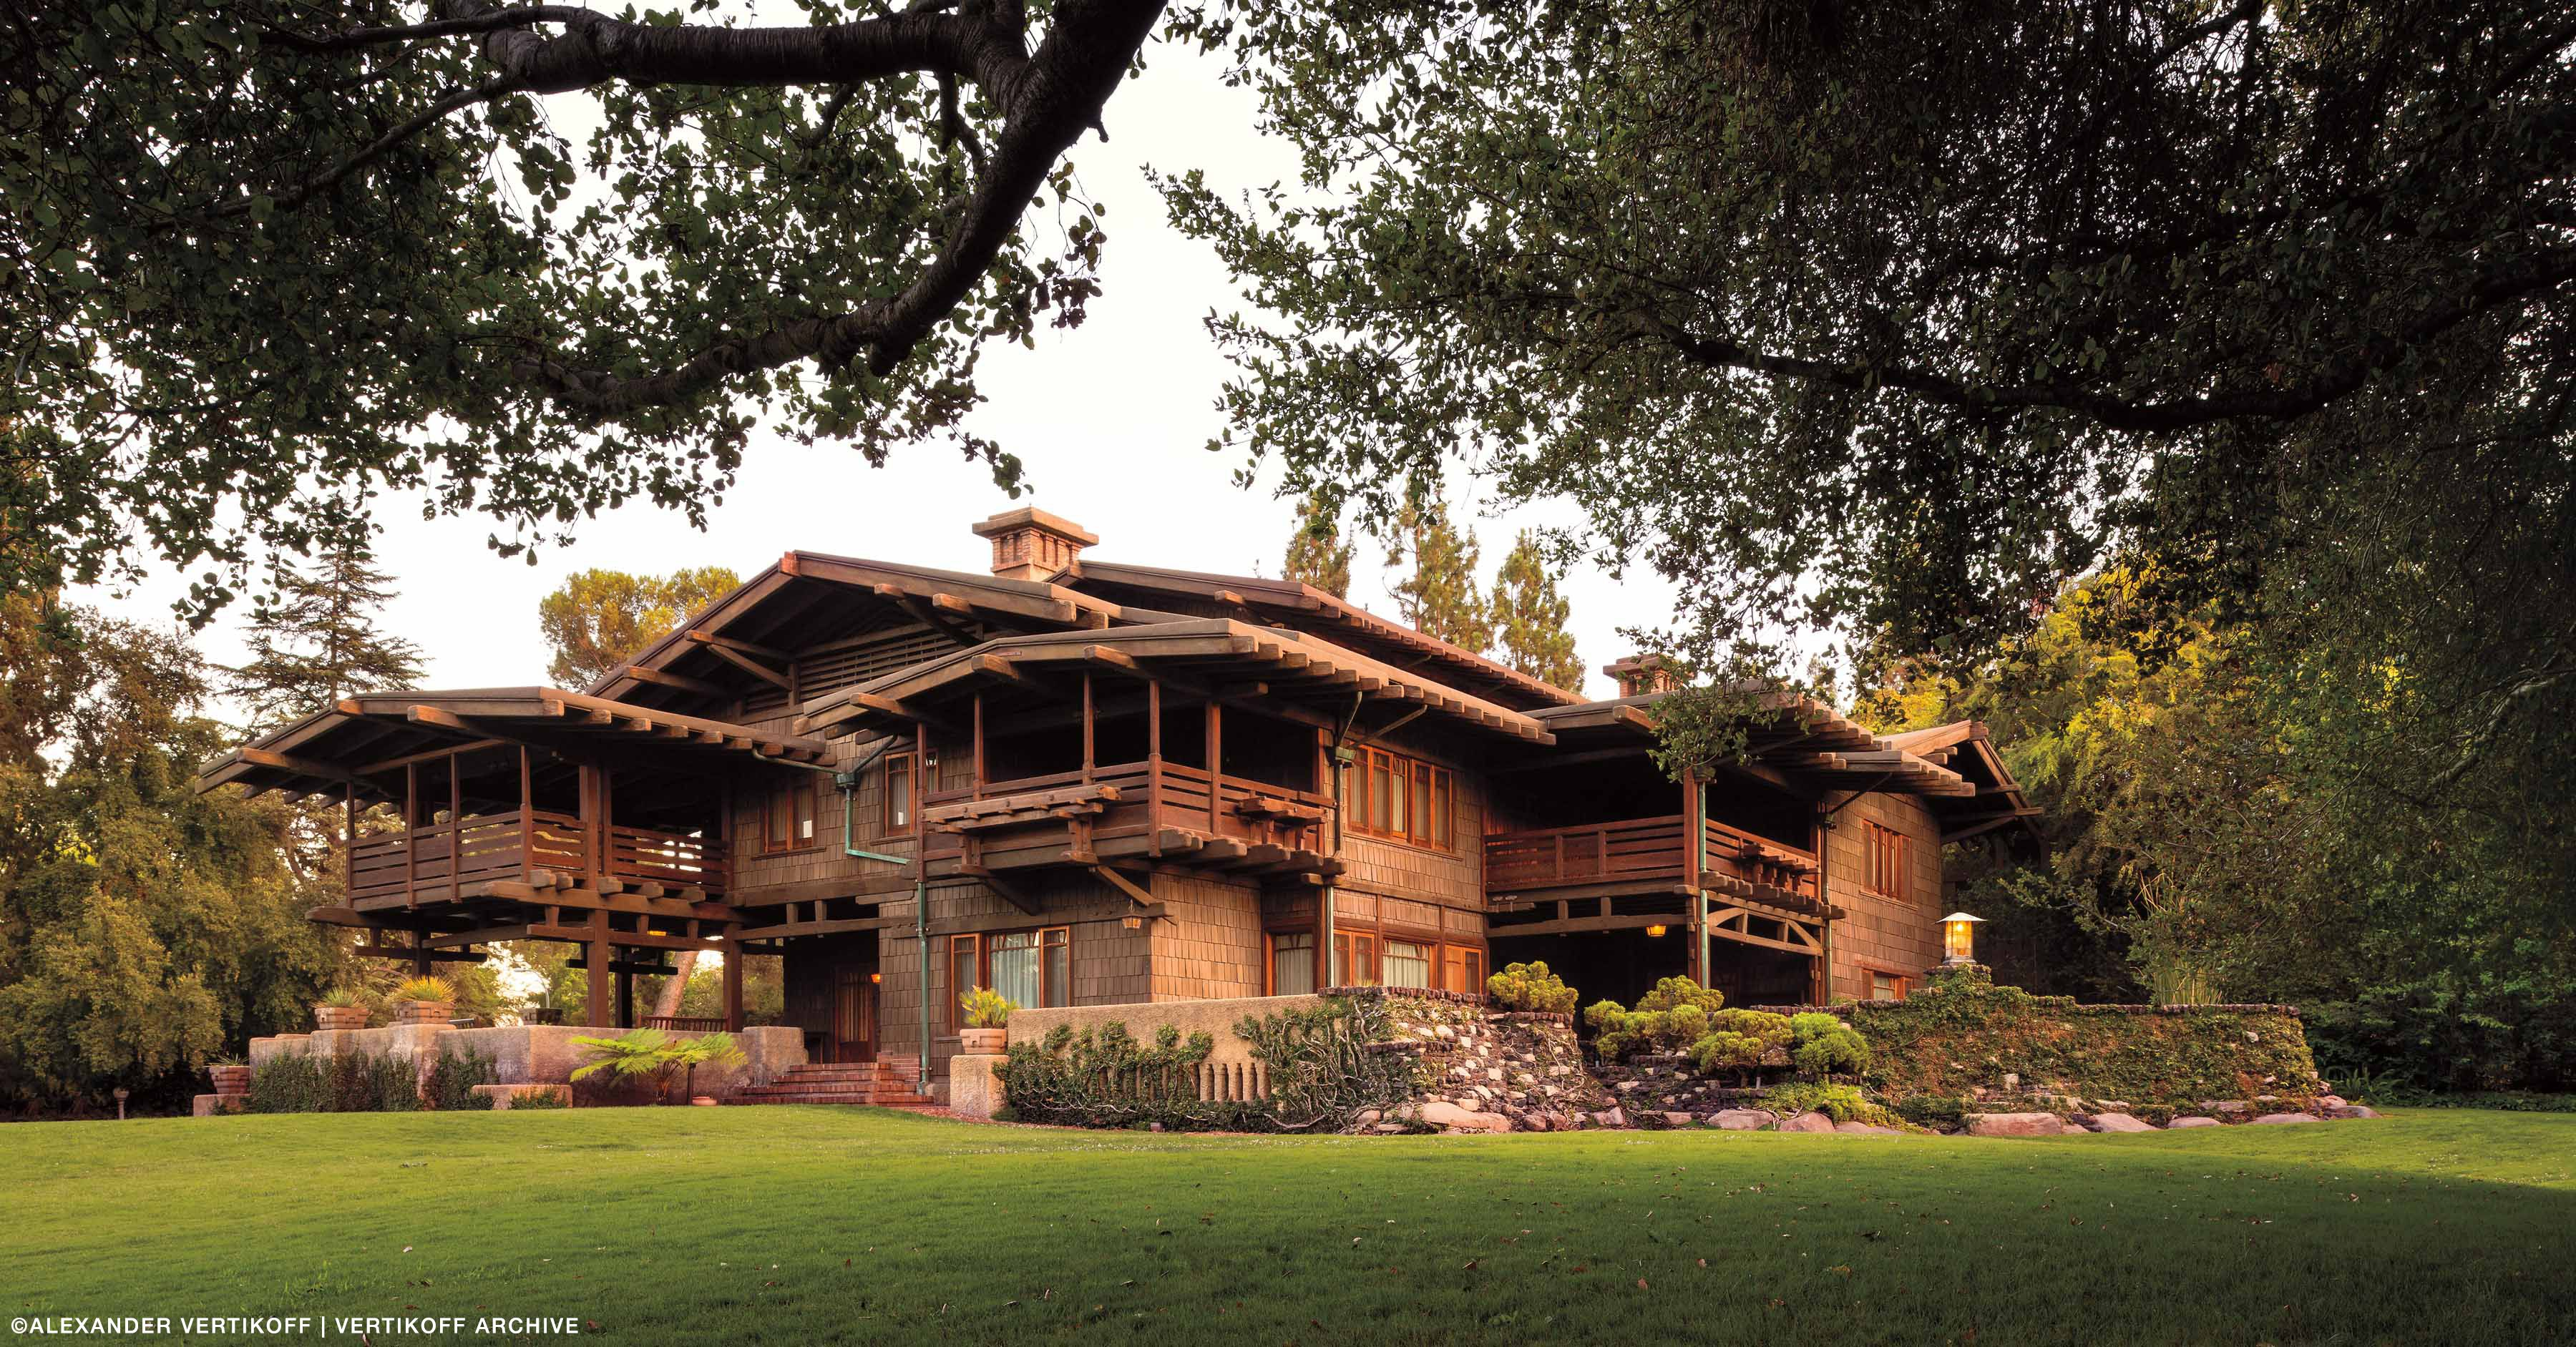 Photo 1 Of 8 In Iconic Perspectives Greene Greene S Gamble House Gamble House Pasadena Gamble House Historic Homes